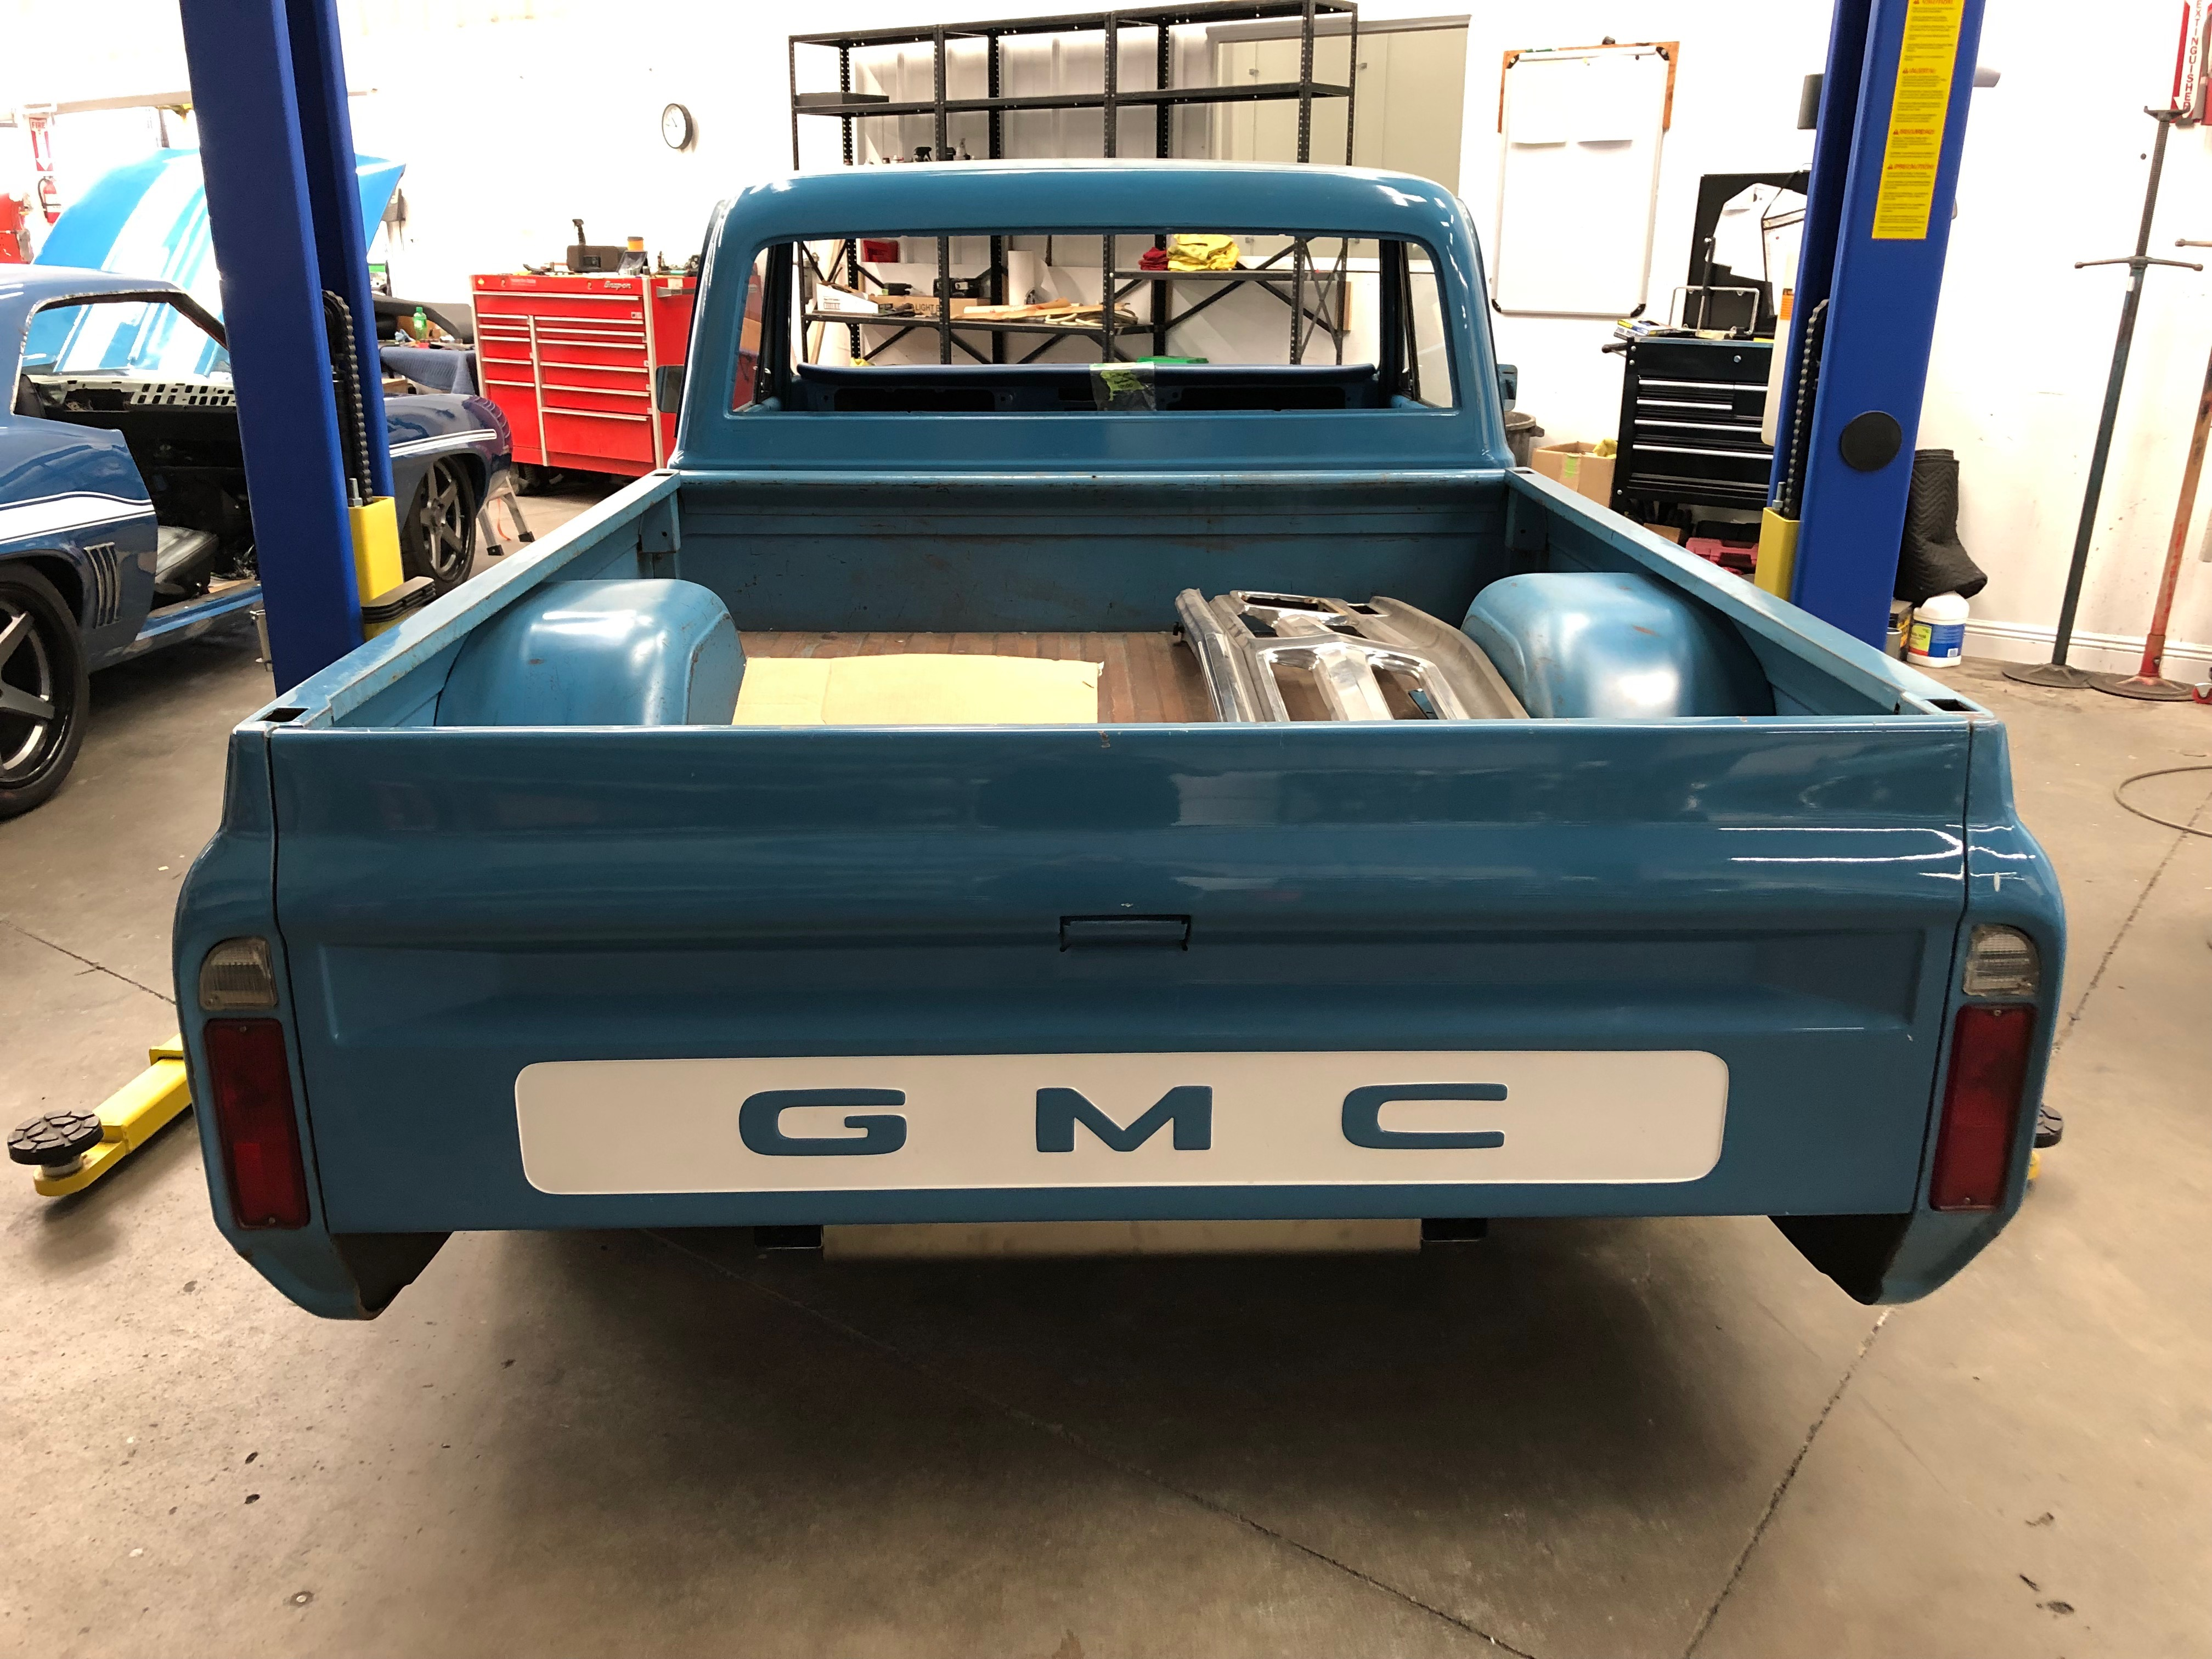 1967 Gmc Truck Hot Rods Custom Stuff Inc